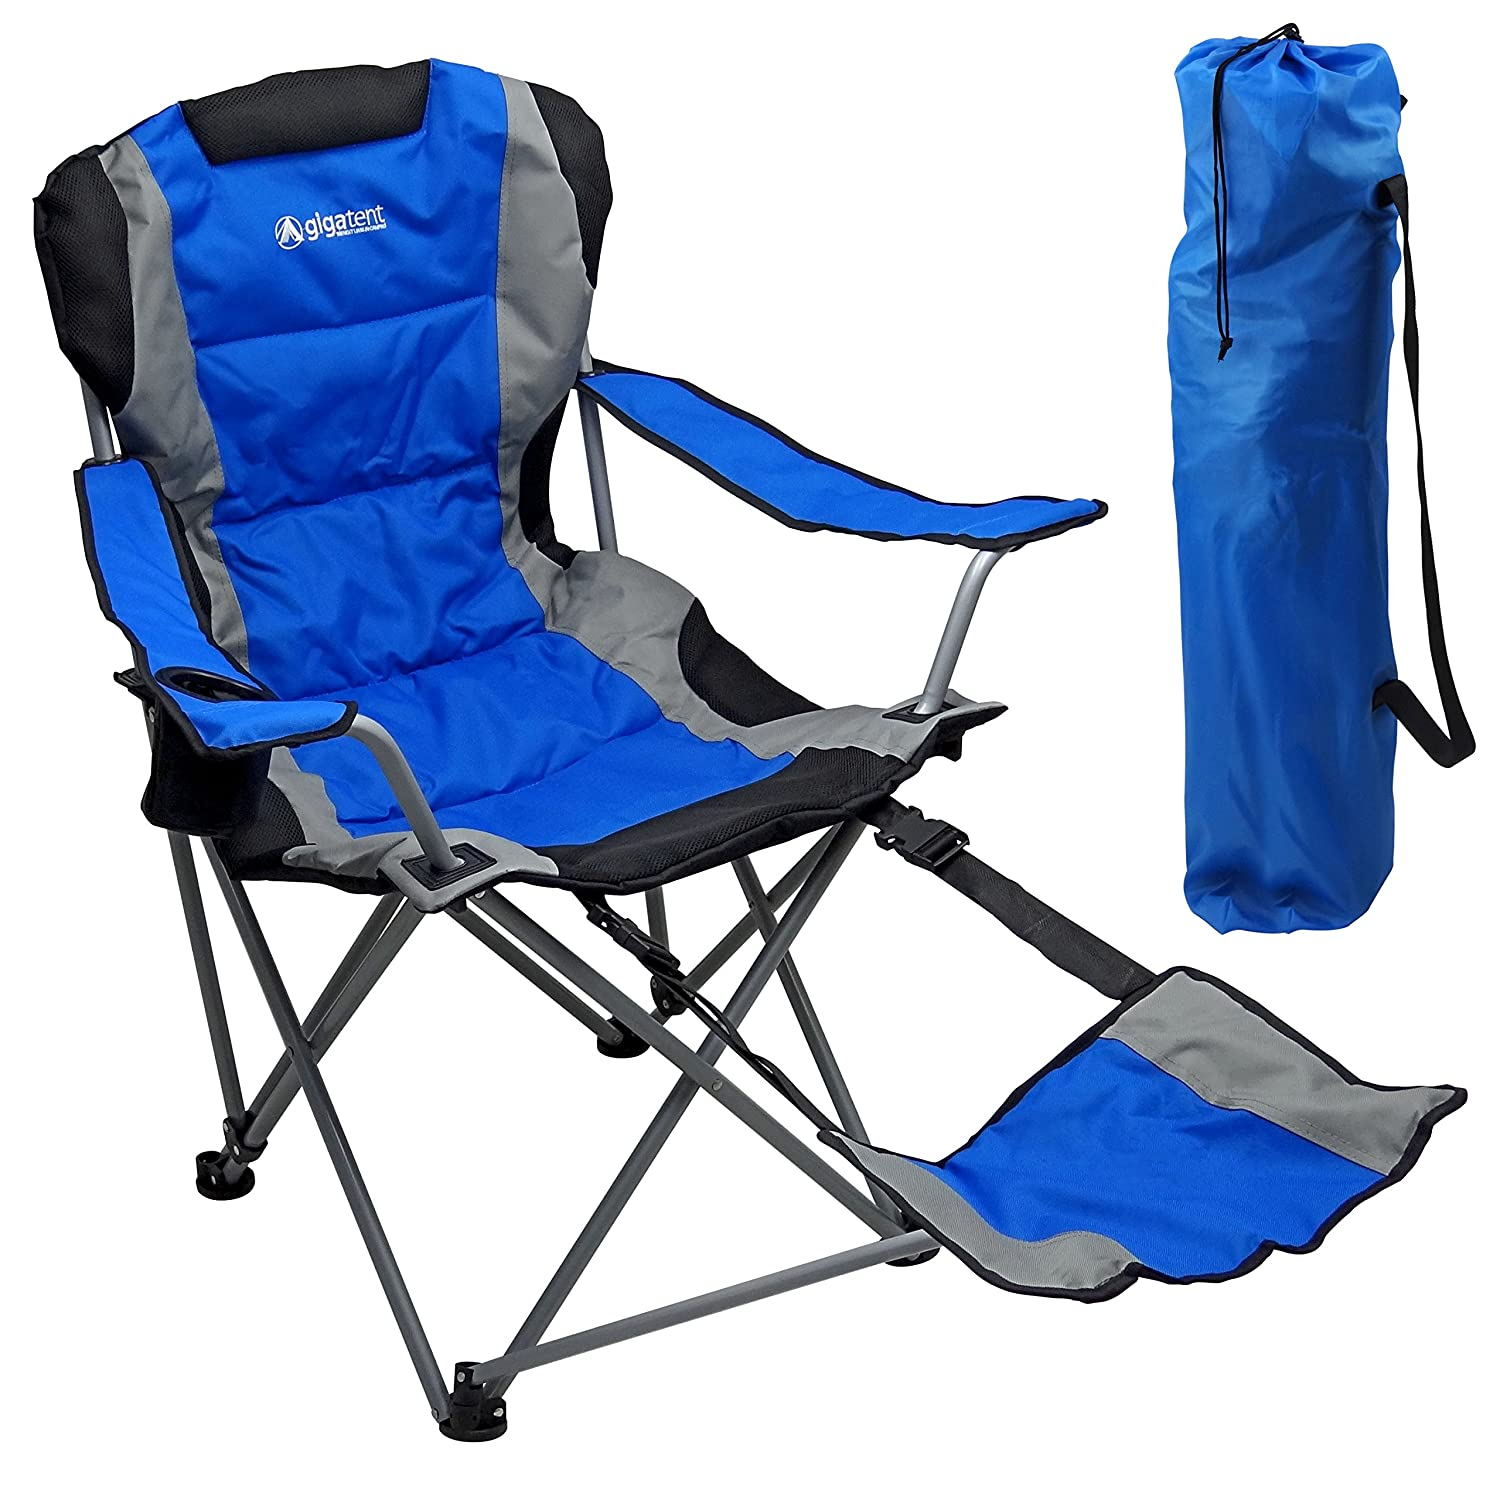 GigaTent Outdoor Quad Camping Chair